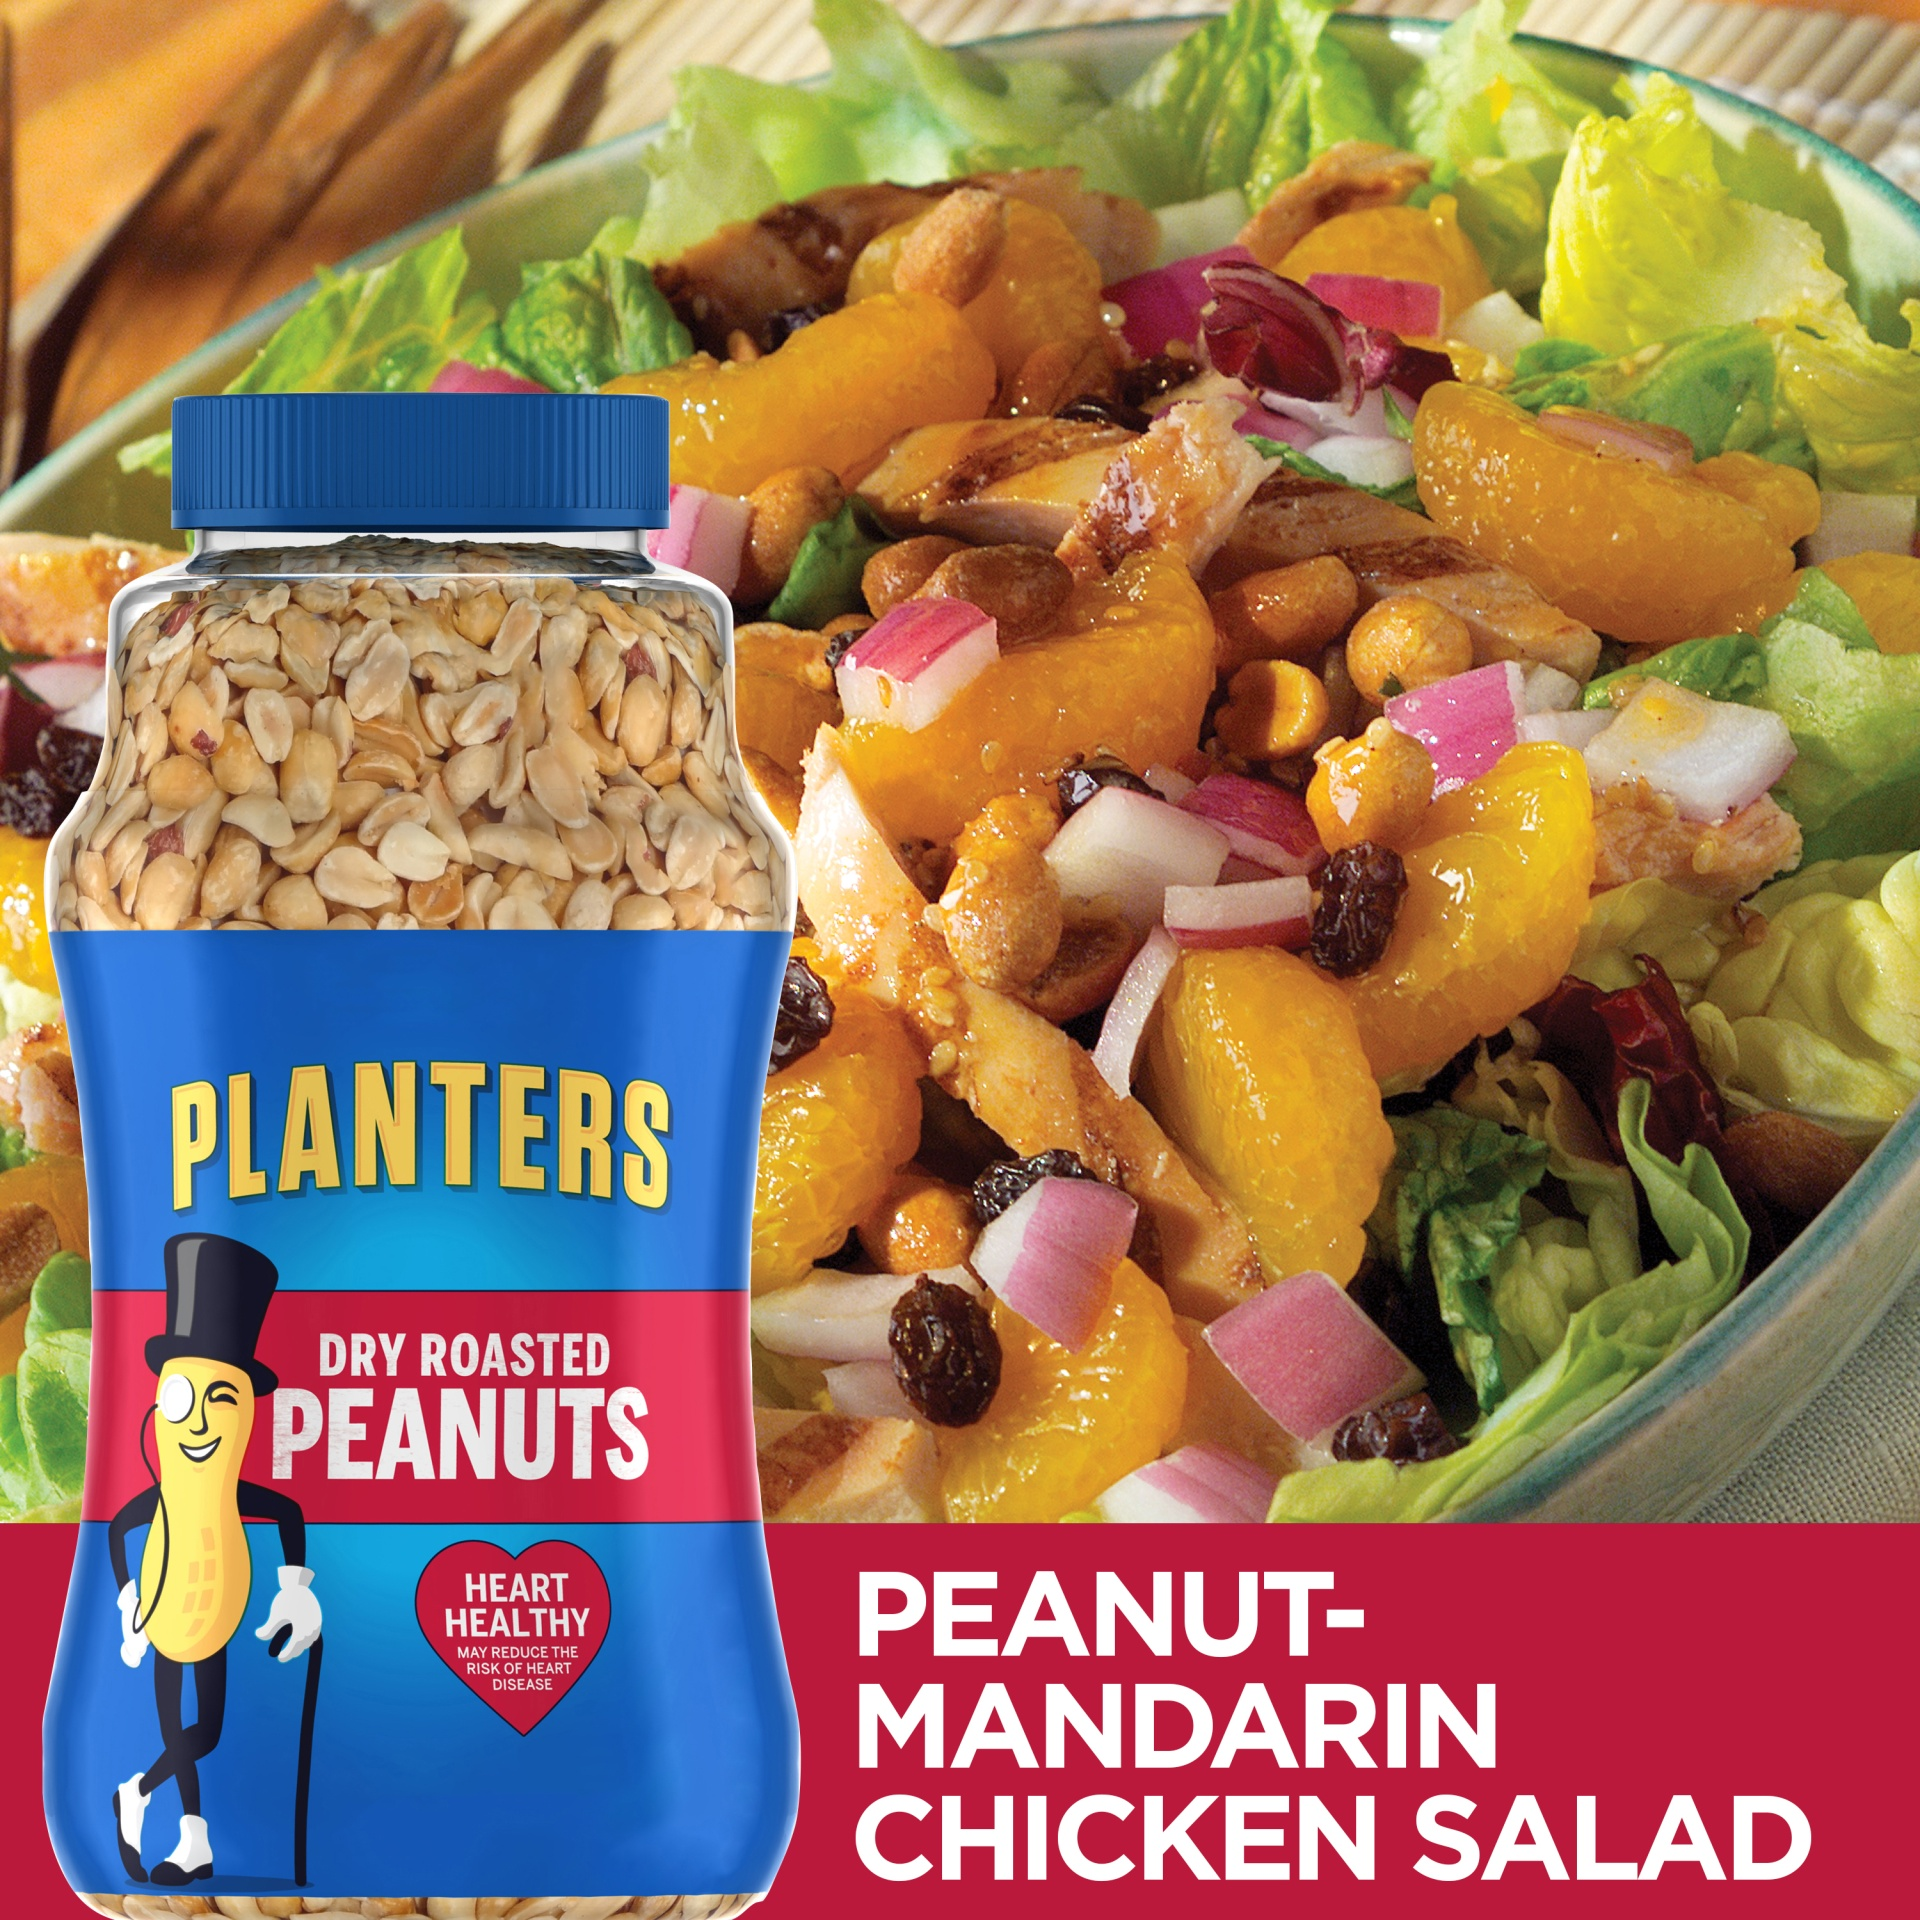 slide 2 of 7, Planters Dry Roasted Peanuts,